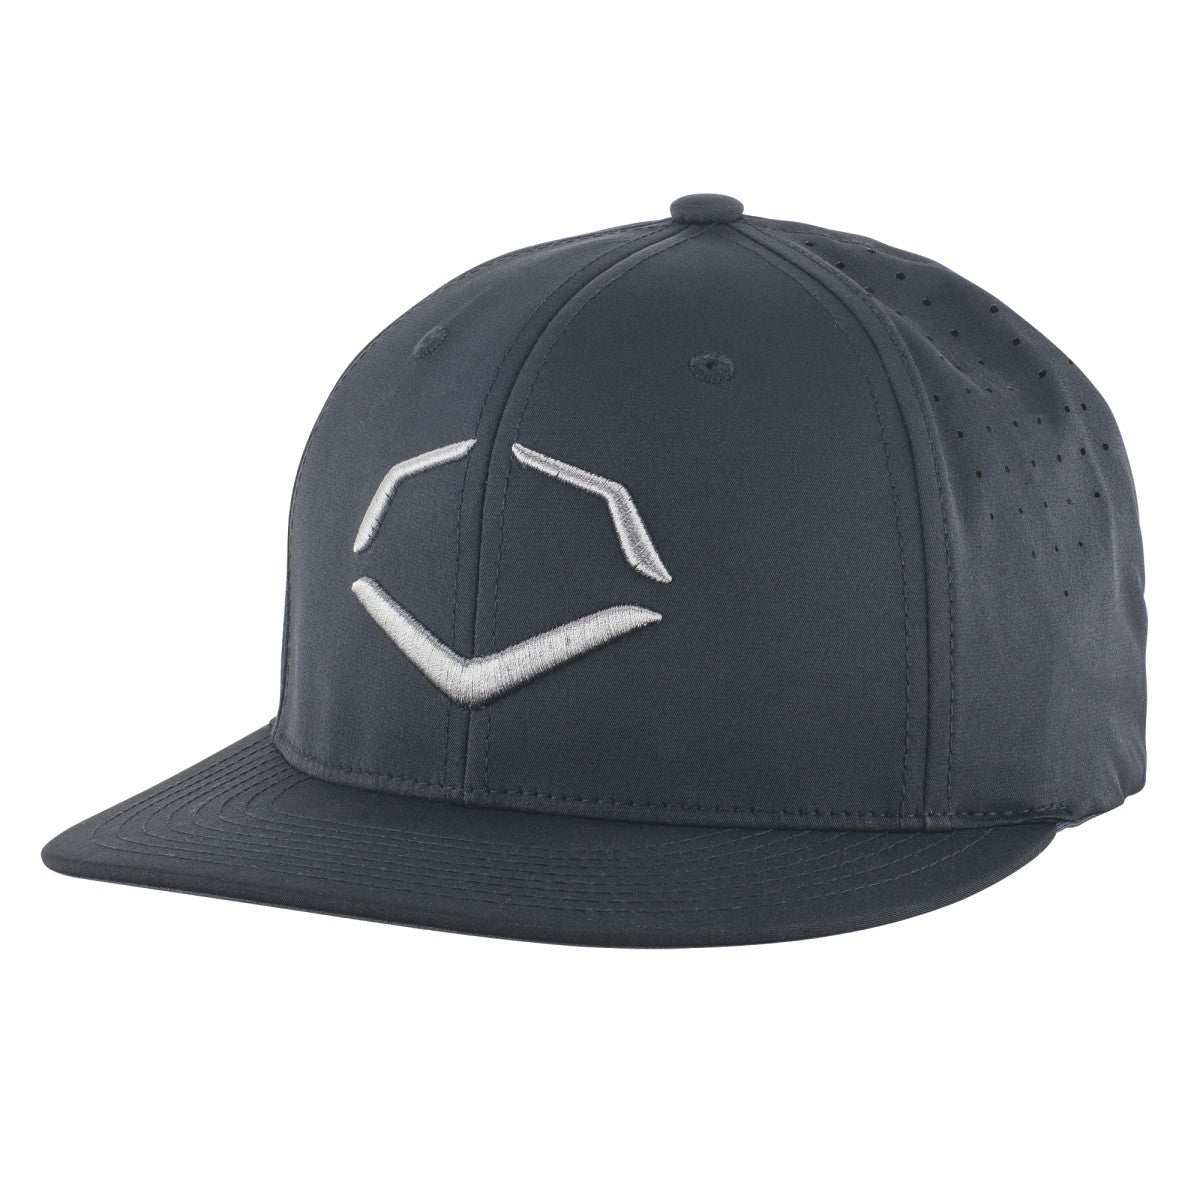 3f1b0924f24 ... official store evoshield tourney evolite flexfit hat texas bat company  5ff3a a97f5